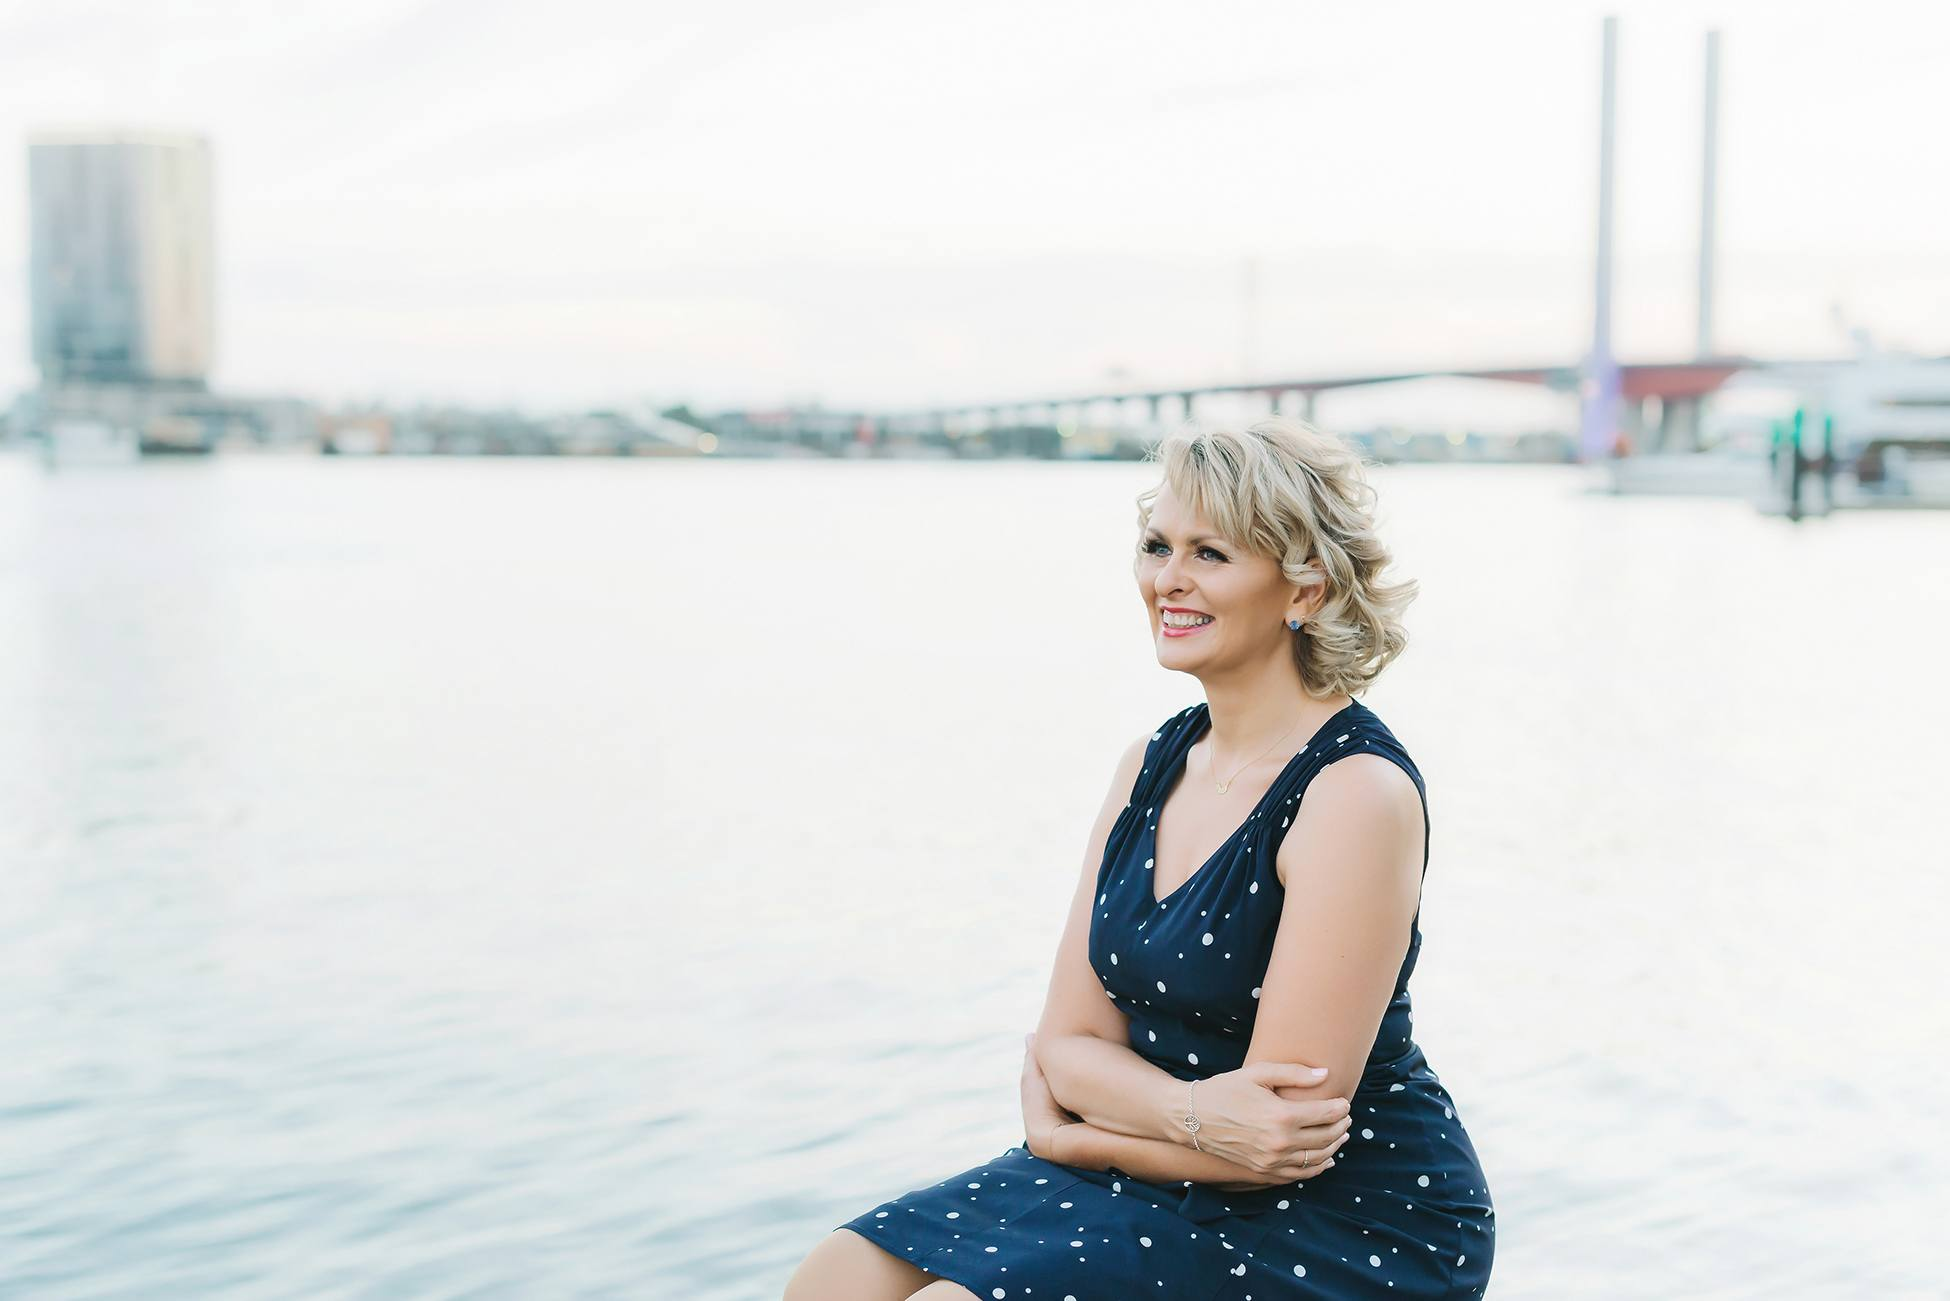 Melbourne based digital strategist Emma Sidney digital strategy and coaching